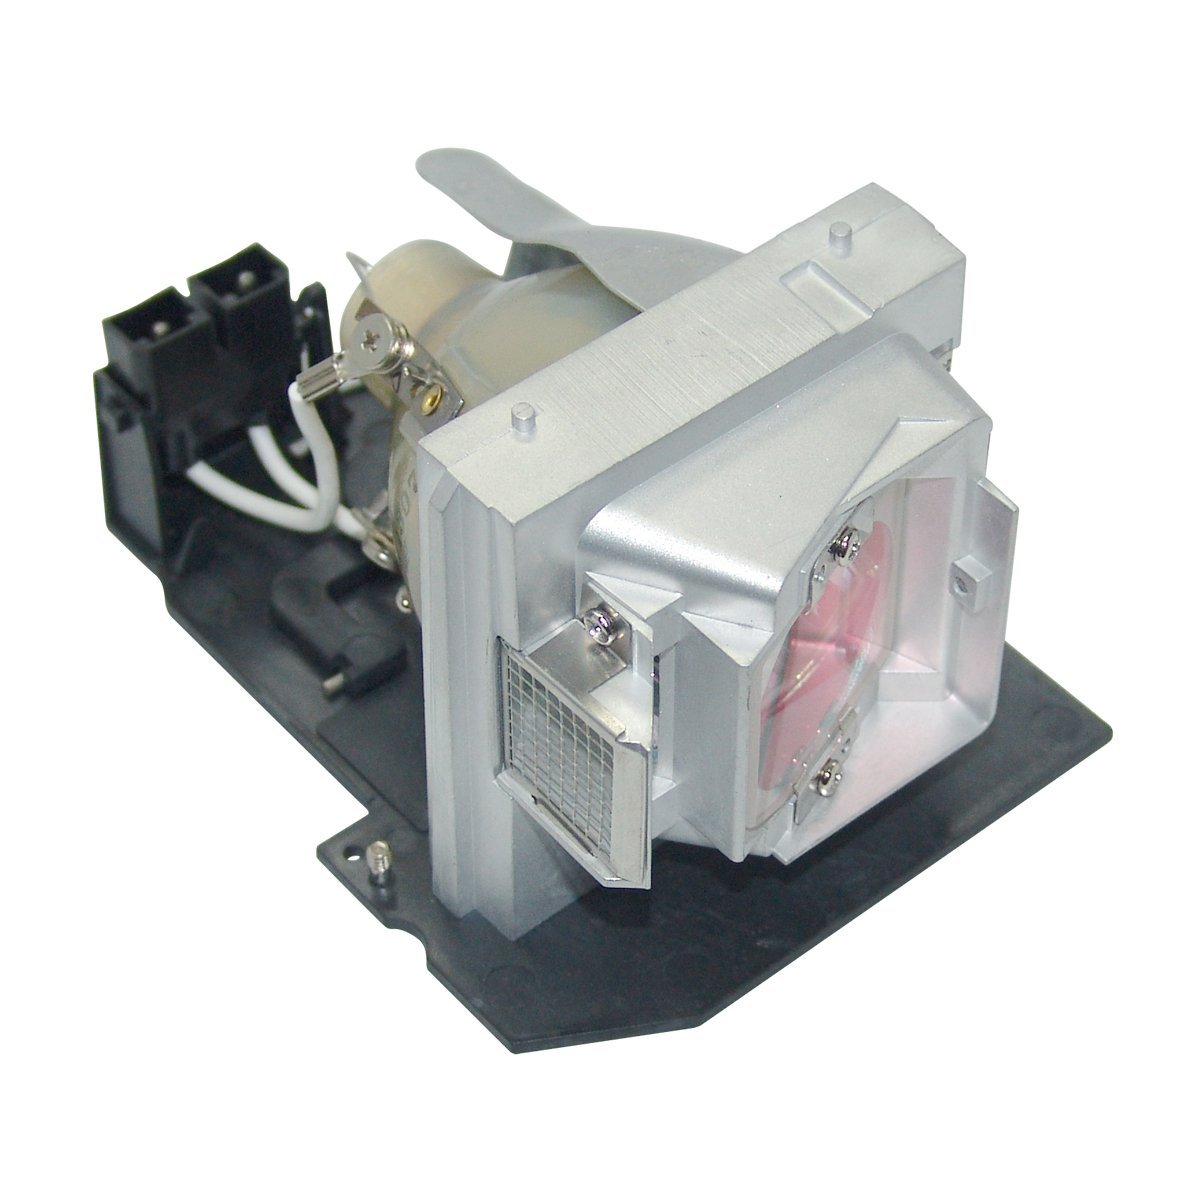 Projector Lamp Bulb with housing 725-10127 311-9421 X415G for DELL 7609WU with 180days warrantyProjector Lamp Bulb with housing 725-10127 311-9421 X415G for DELL 7609WU with 180days warranty